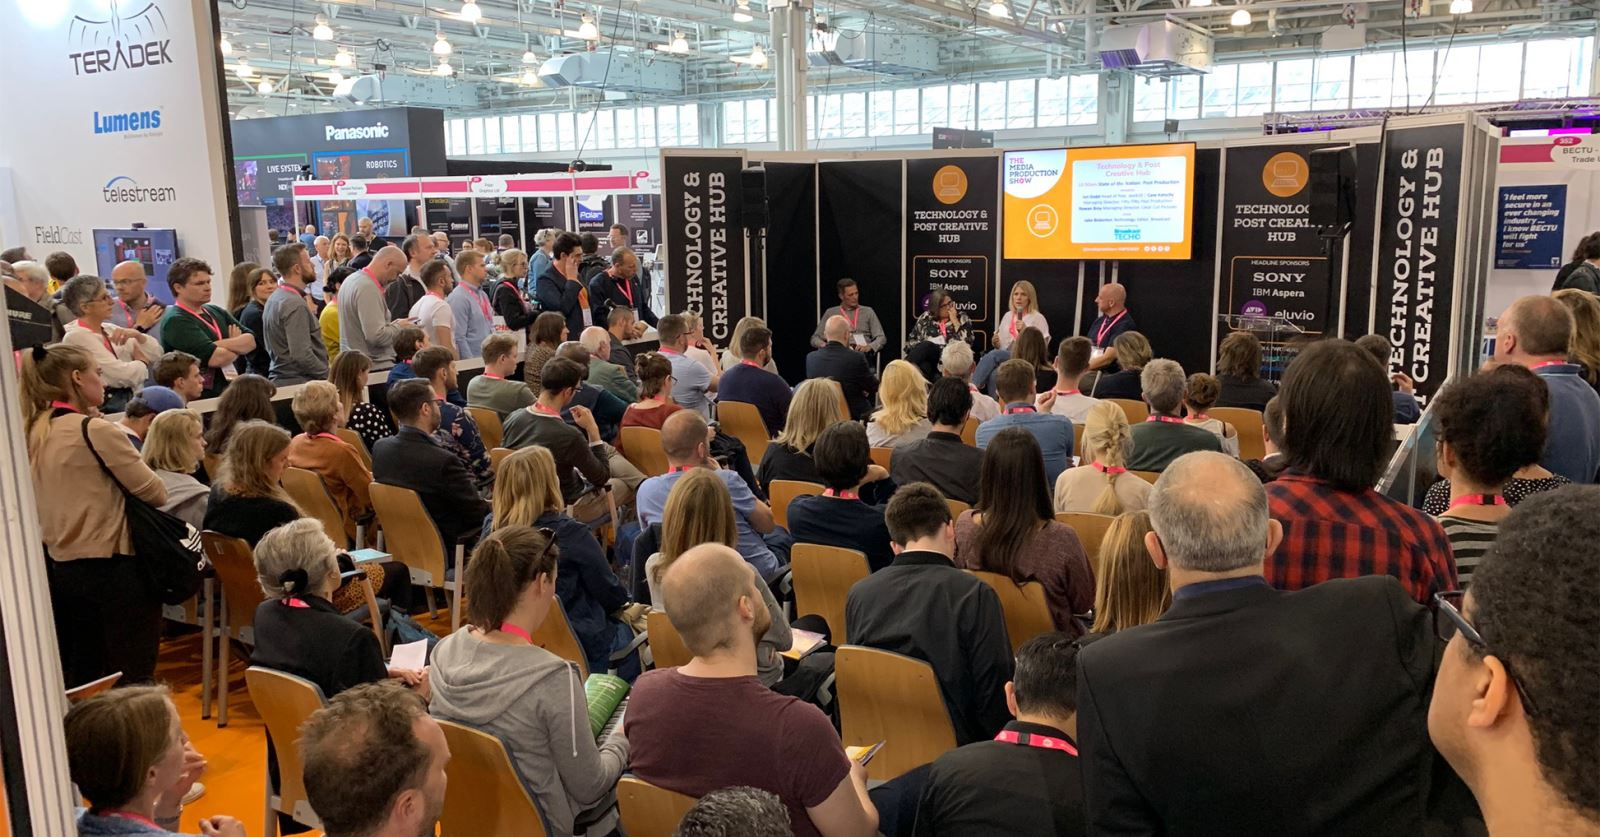 The Technology and Post Creative Hub area at the Media Production Show is drawing big crowds